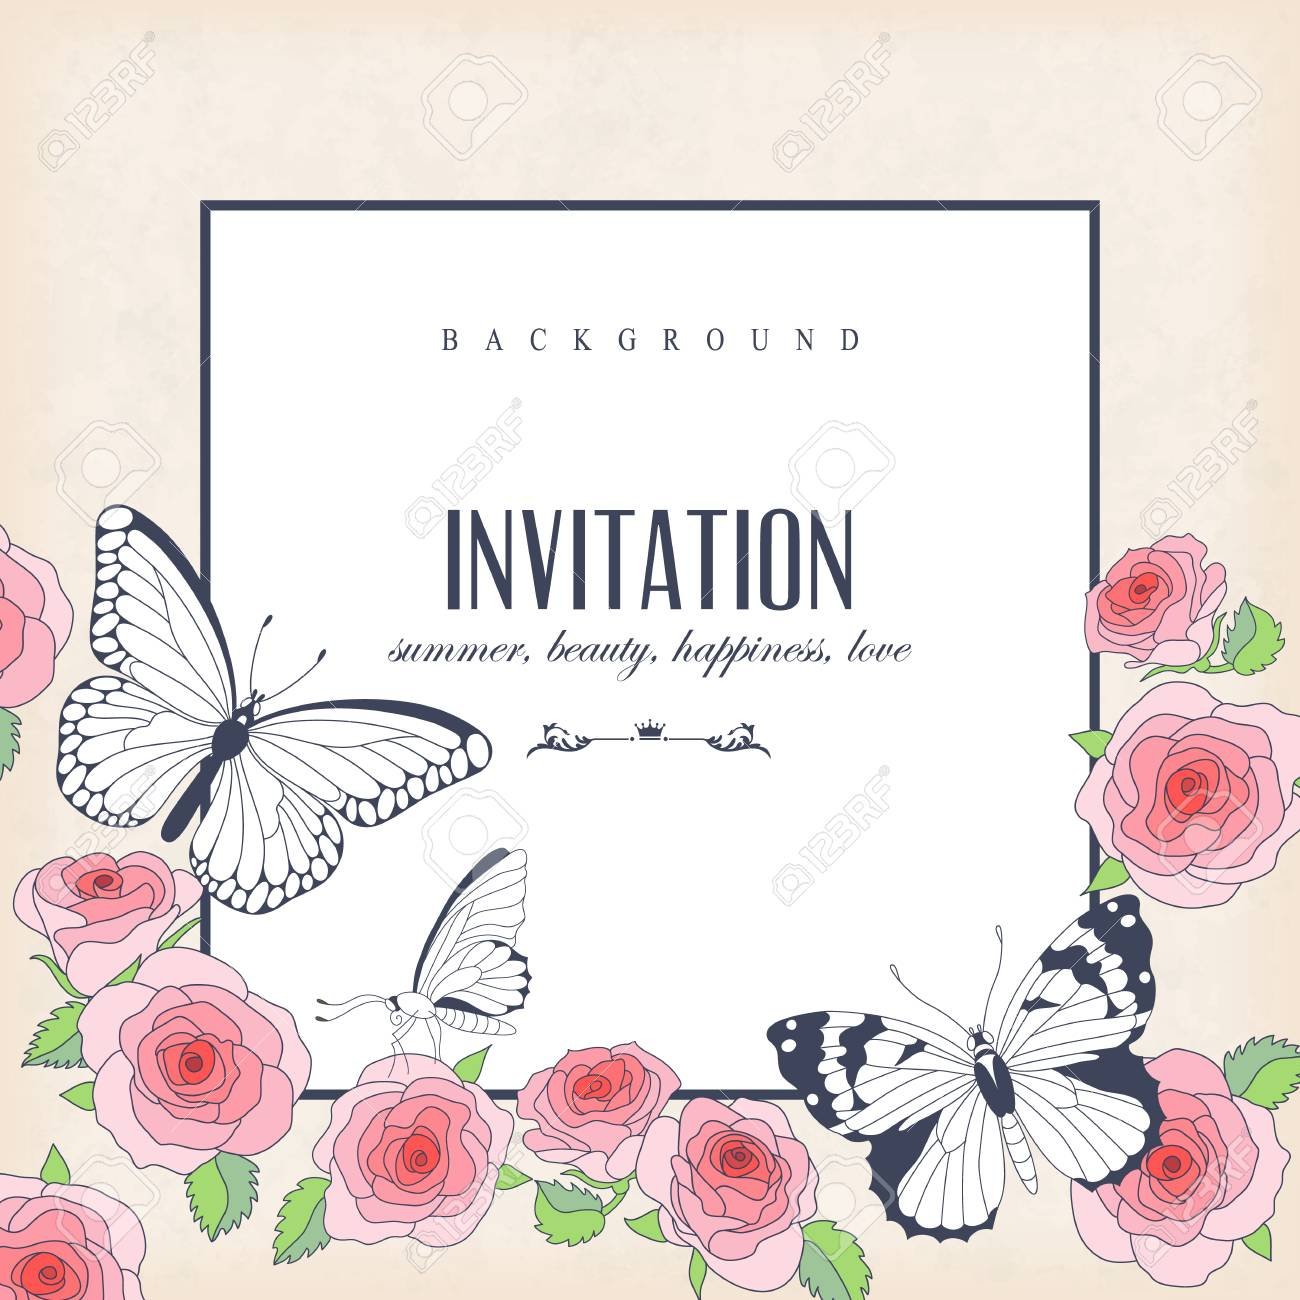 Vector Invitation Card With Butterflies And Roses. Square Frame ...